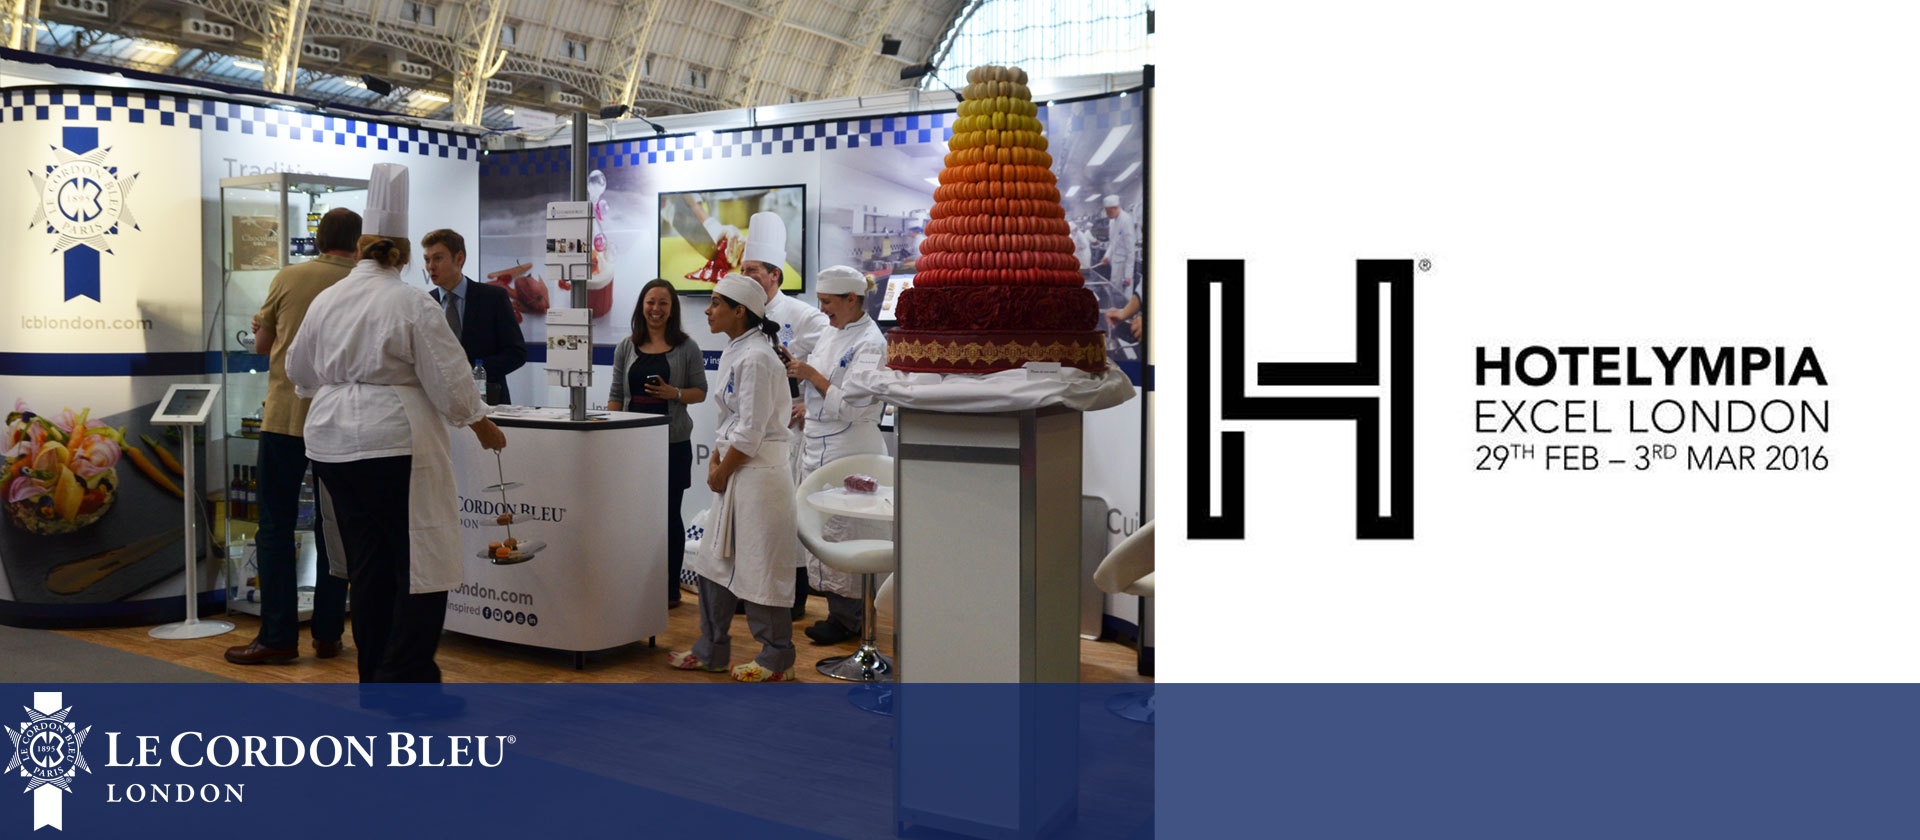 Le Cordon Bleu London Headline Sponsor at Hotelympia 2016